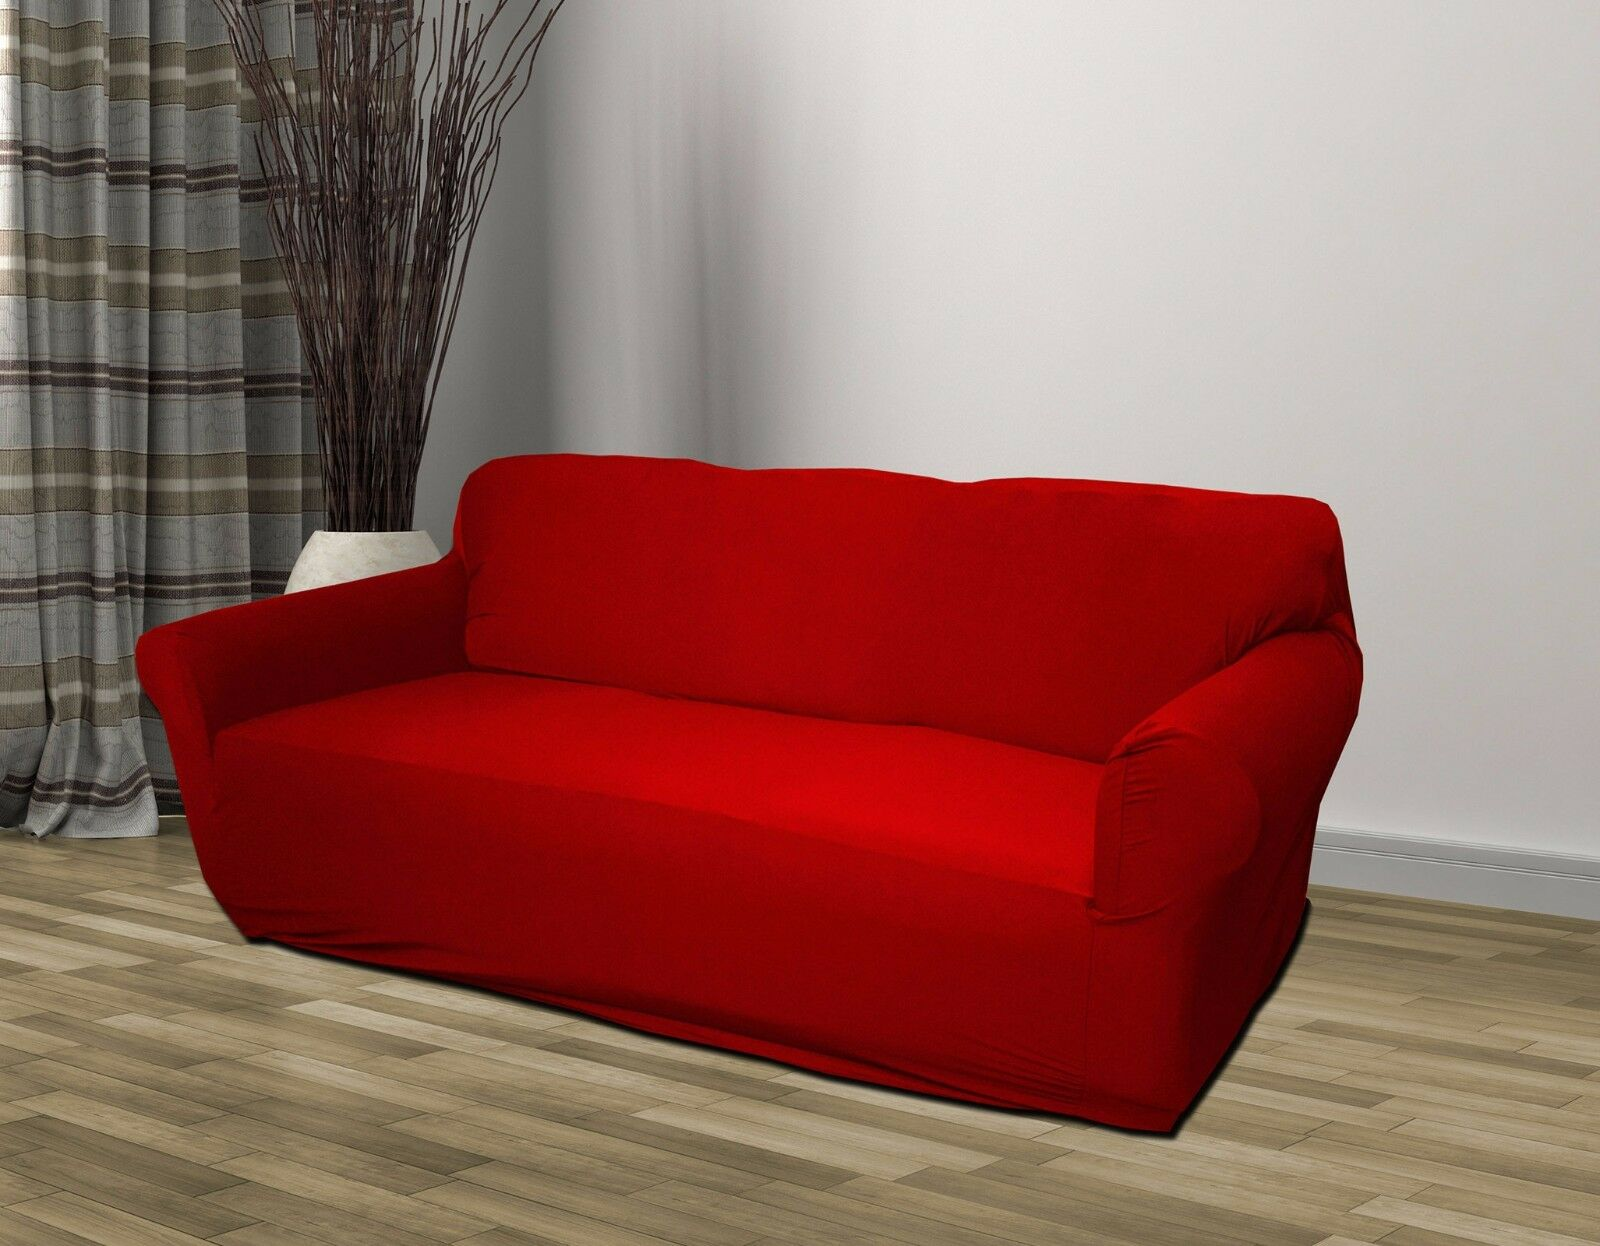 RED JERSEY SOFA STRETCH SLIPCOVER COUCH COVER CHAIR LOVESEAT